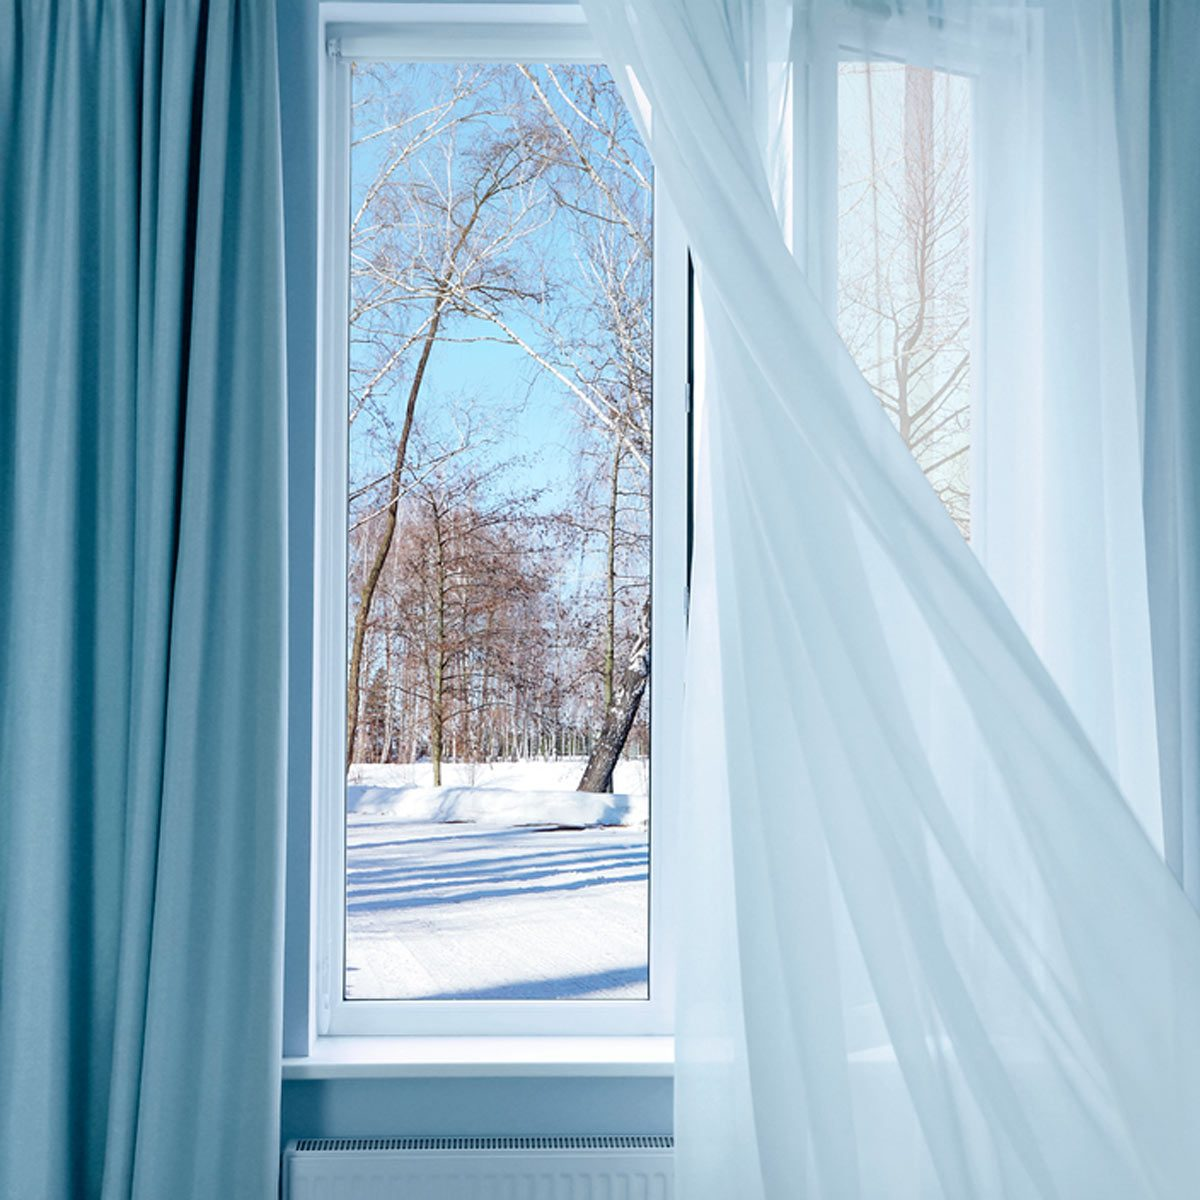 window with winter scene